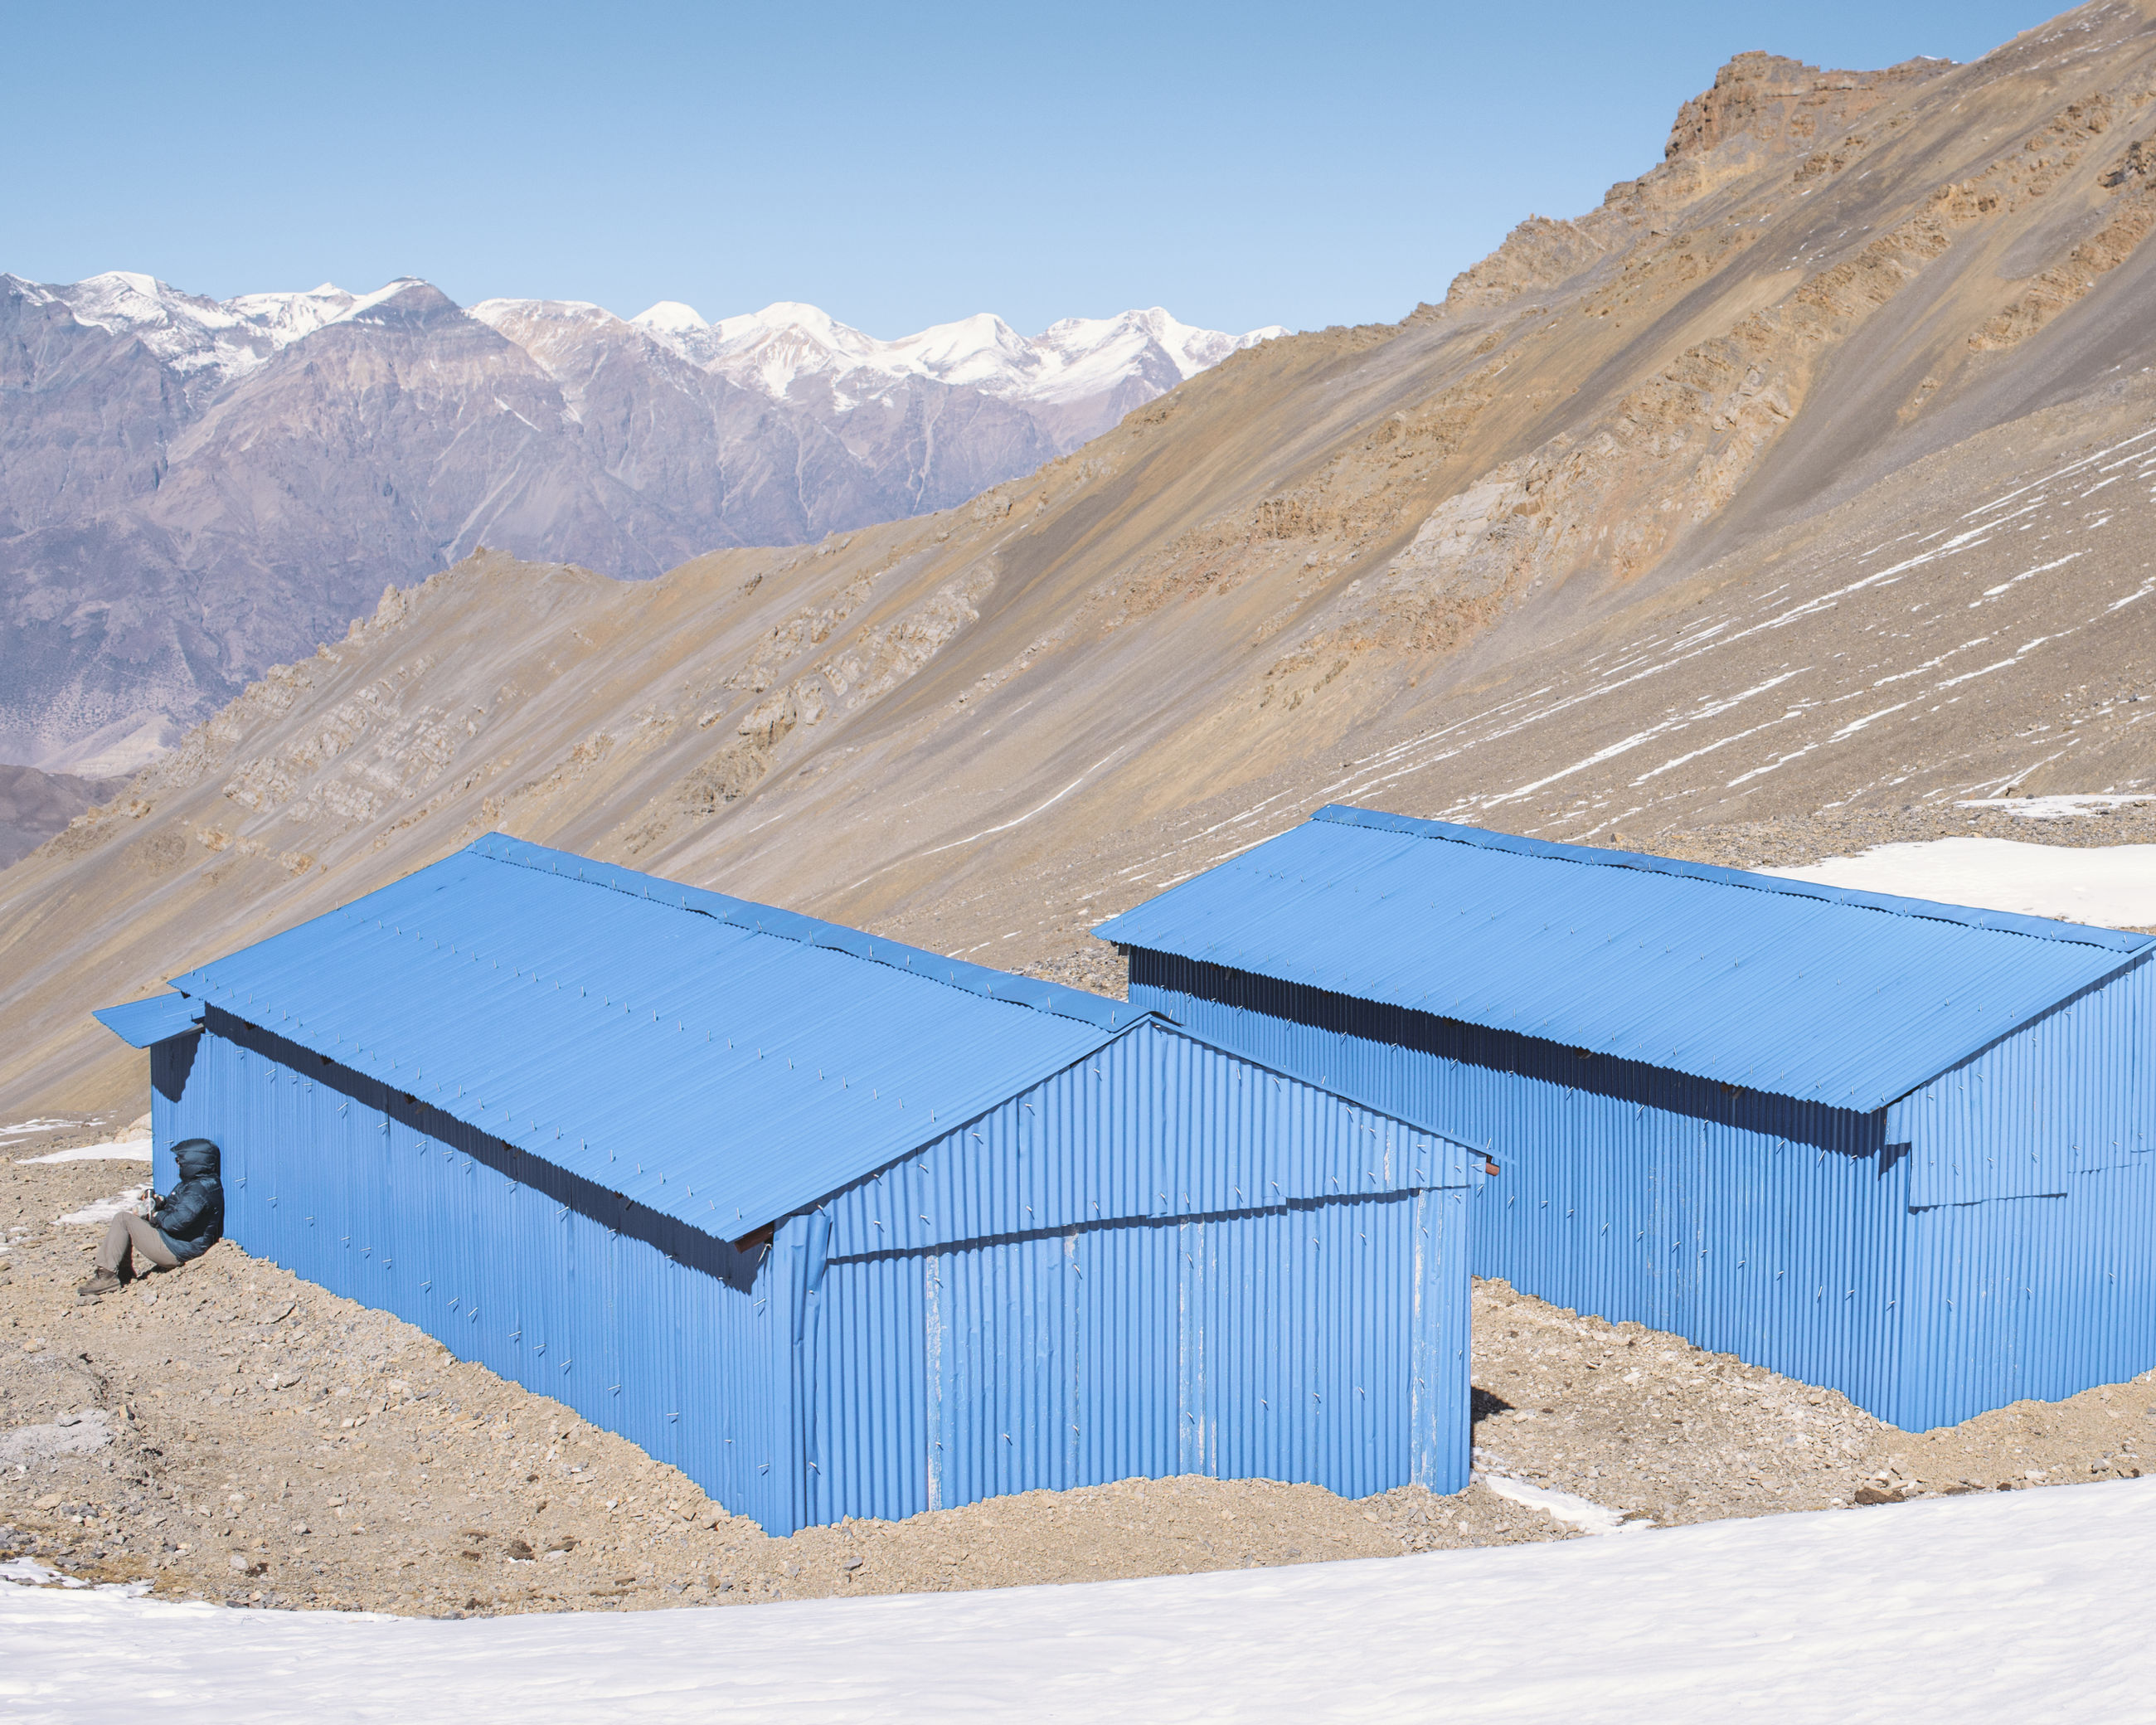 mountain, built structure, blue, snow, building exterior, landscape, house, architecture, sunlight, mountain range, tranquil scene, tranquility, clear sky, sand, winter, day, nature, scenics, cold temperature, sky